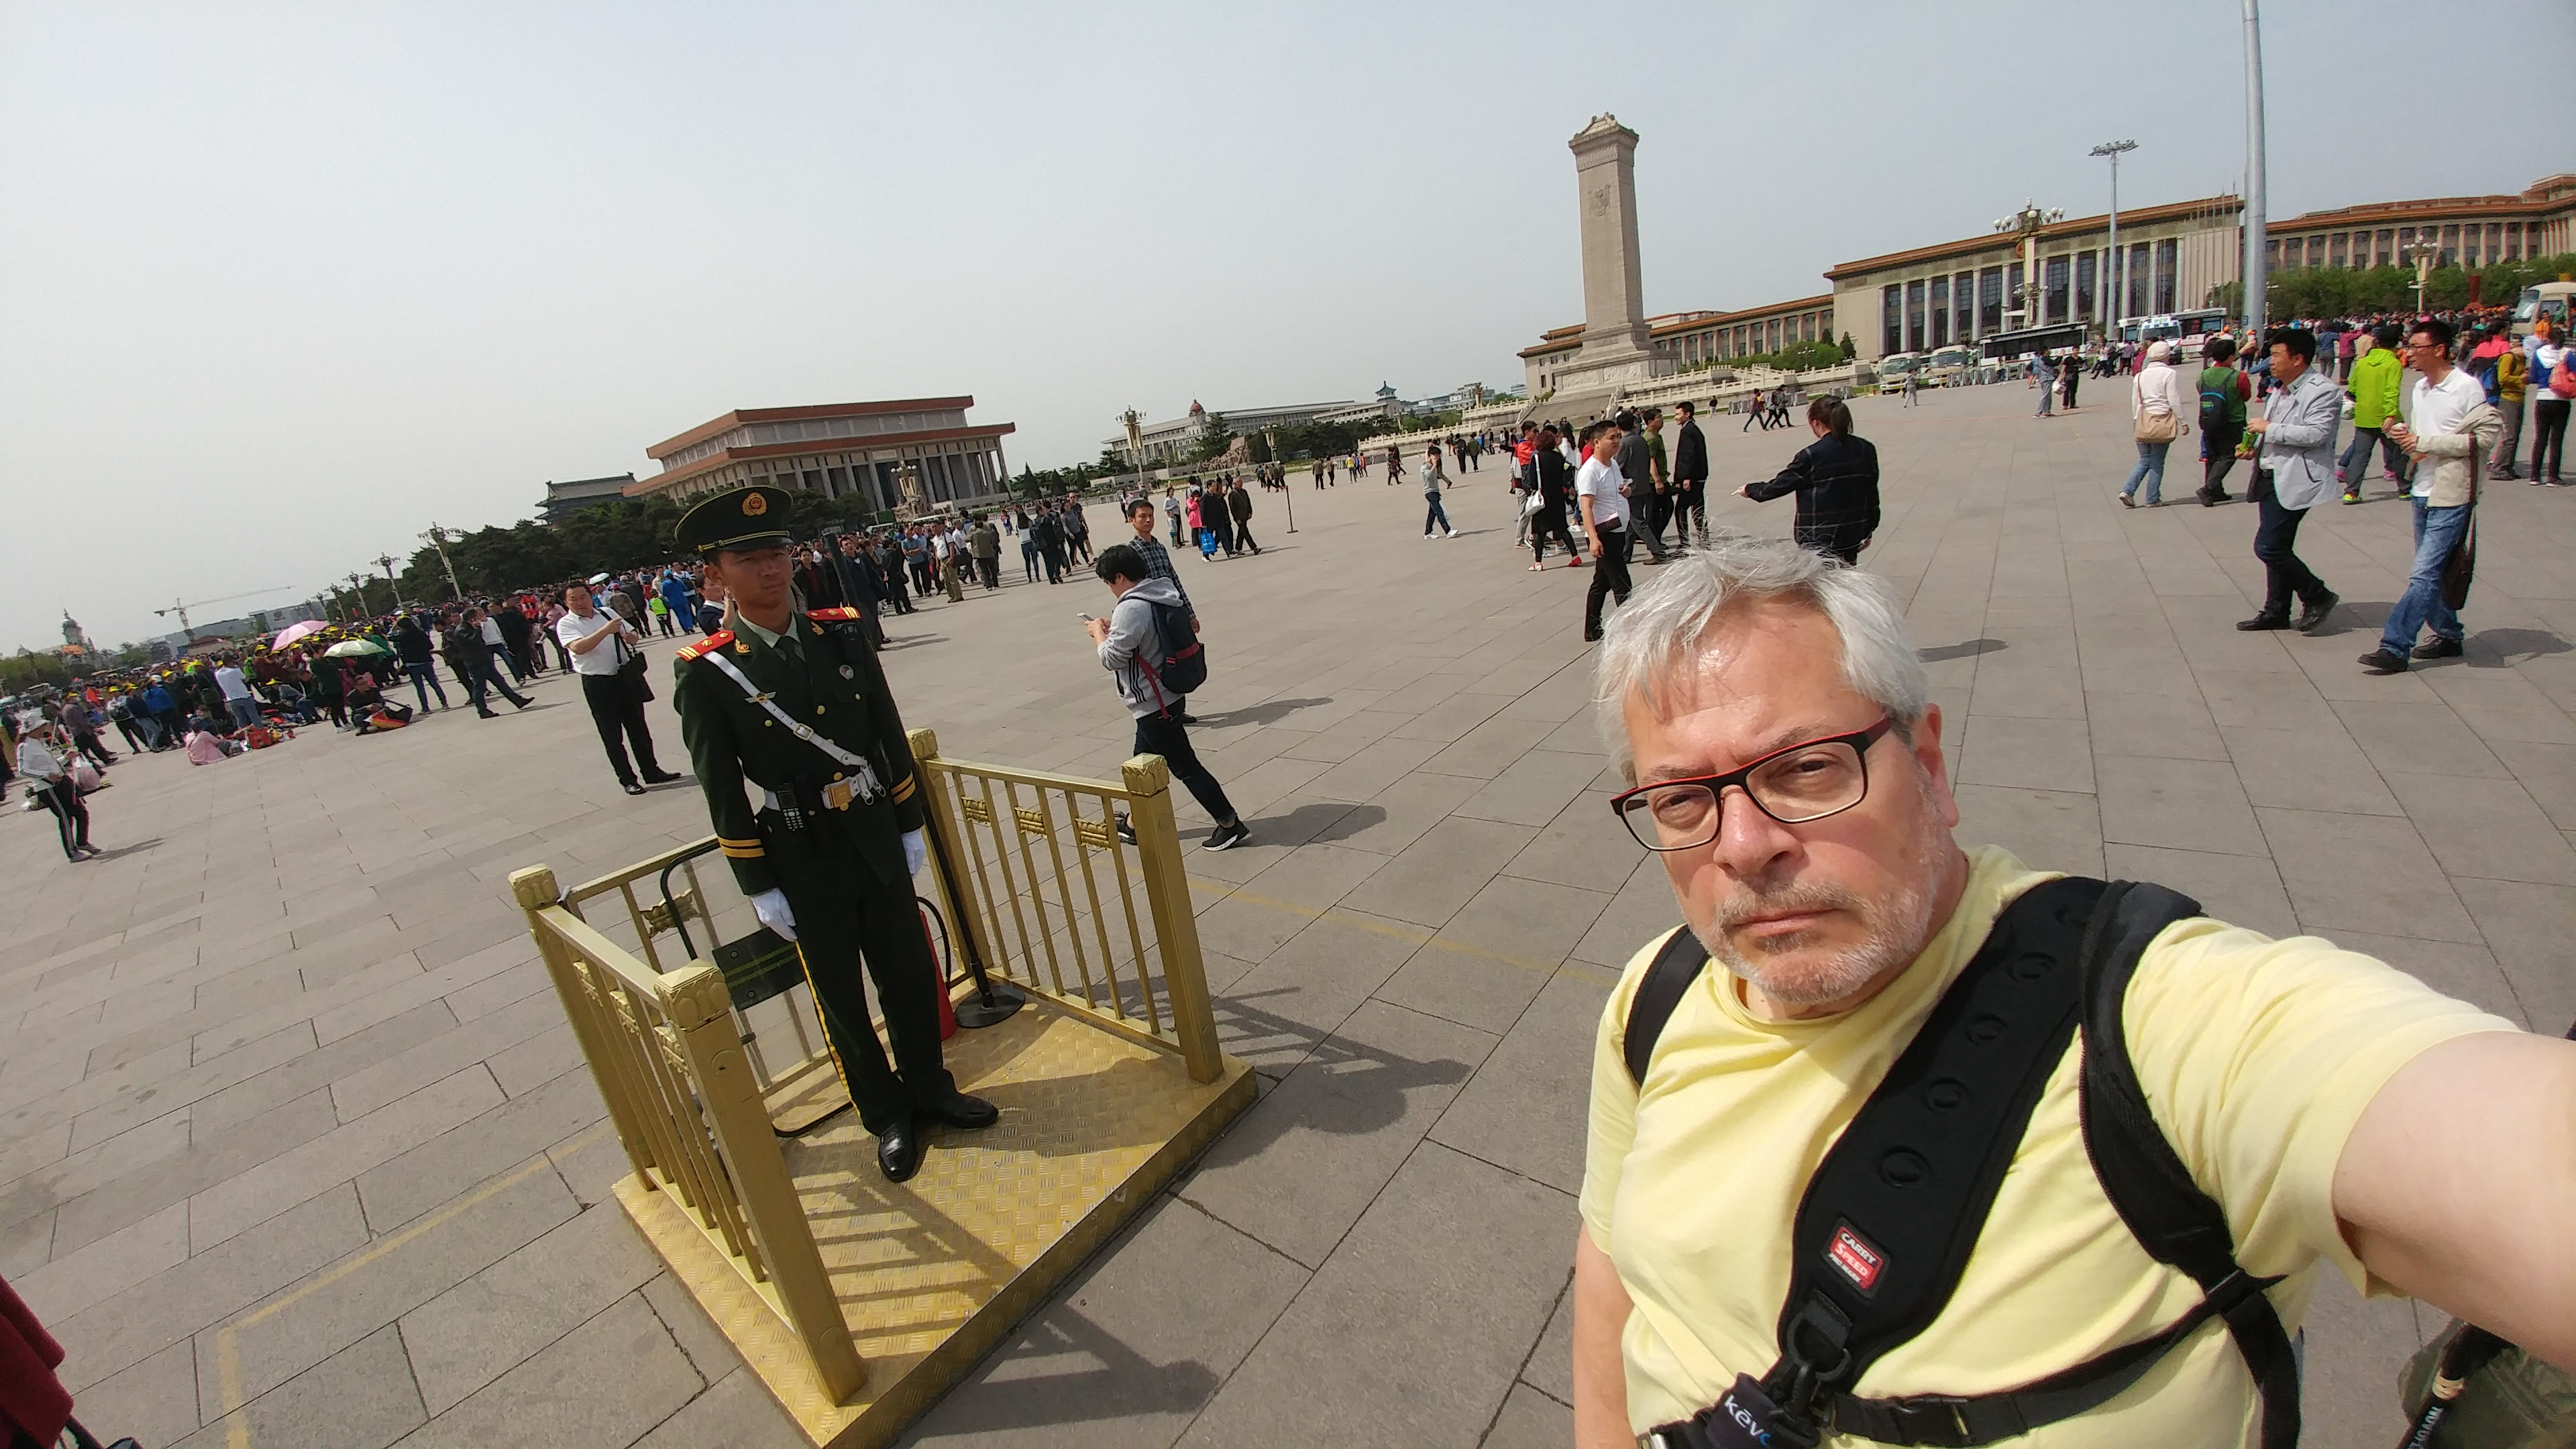 Tiananmen Square selfie covered more than the the human eye peripheral vision can see